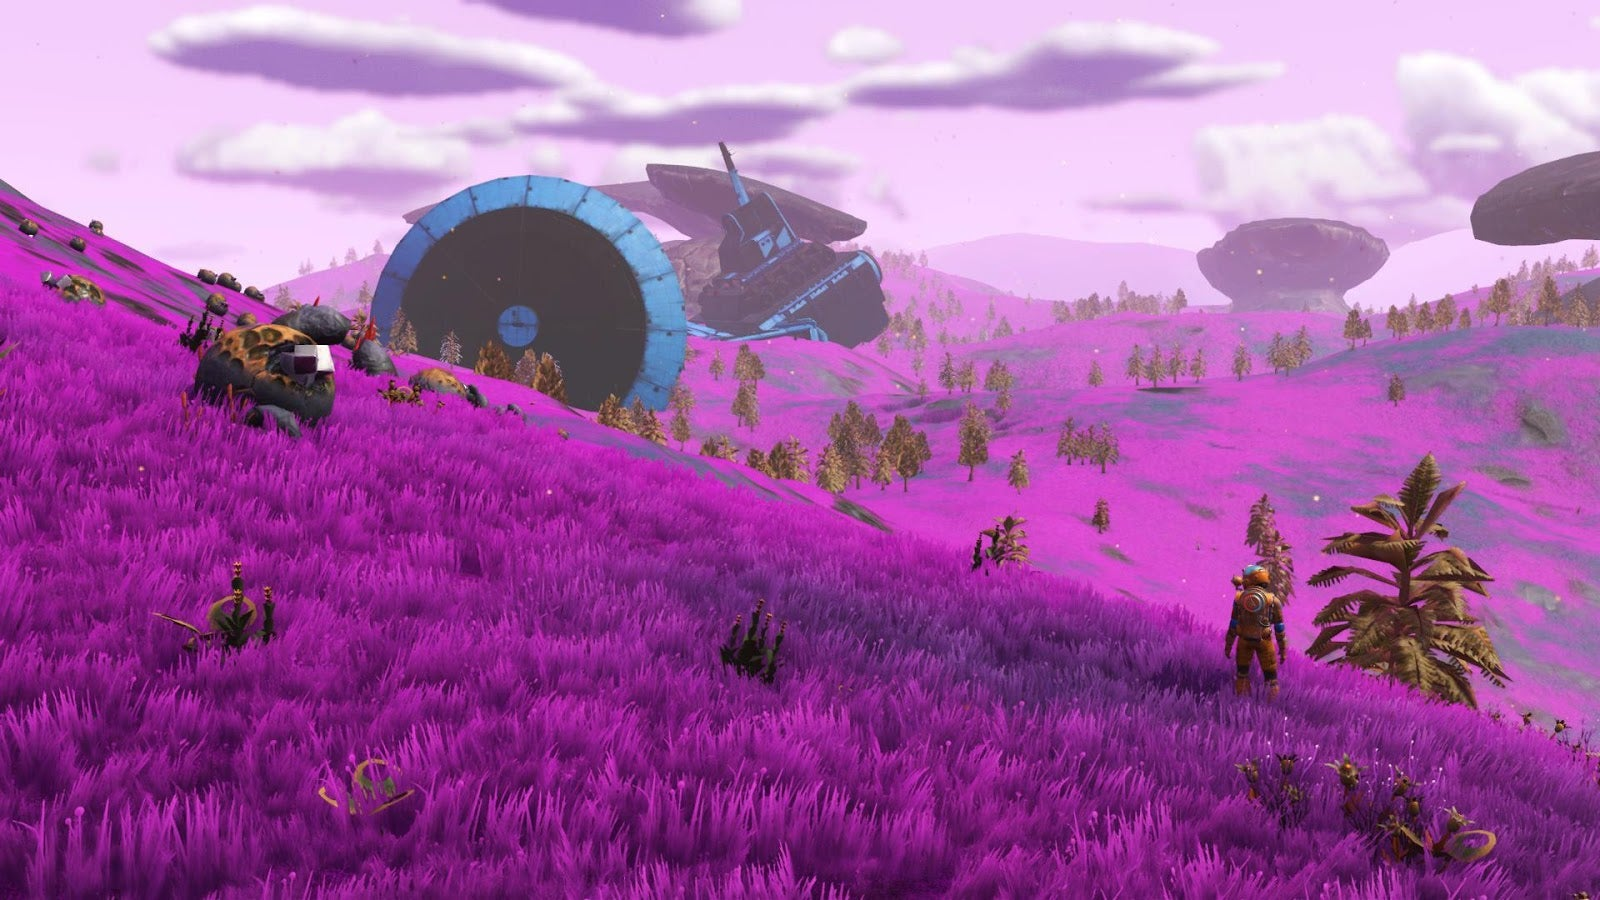 No Man's Sky Players Are Spotting Pink Grass, And They're Thrilled